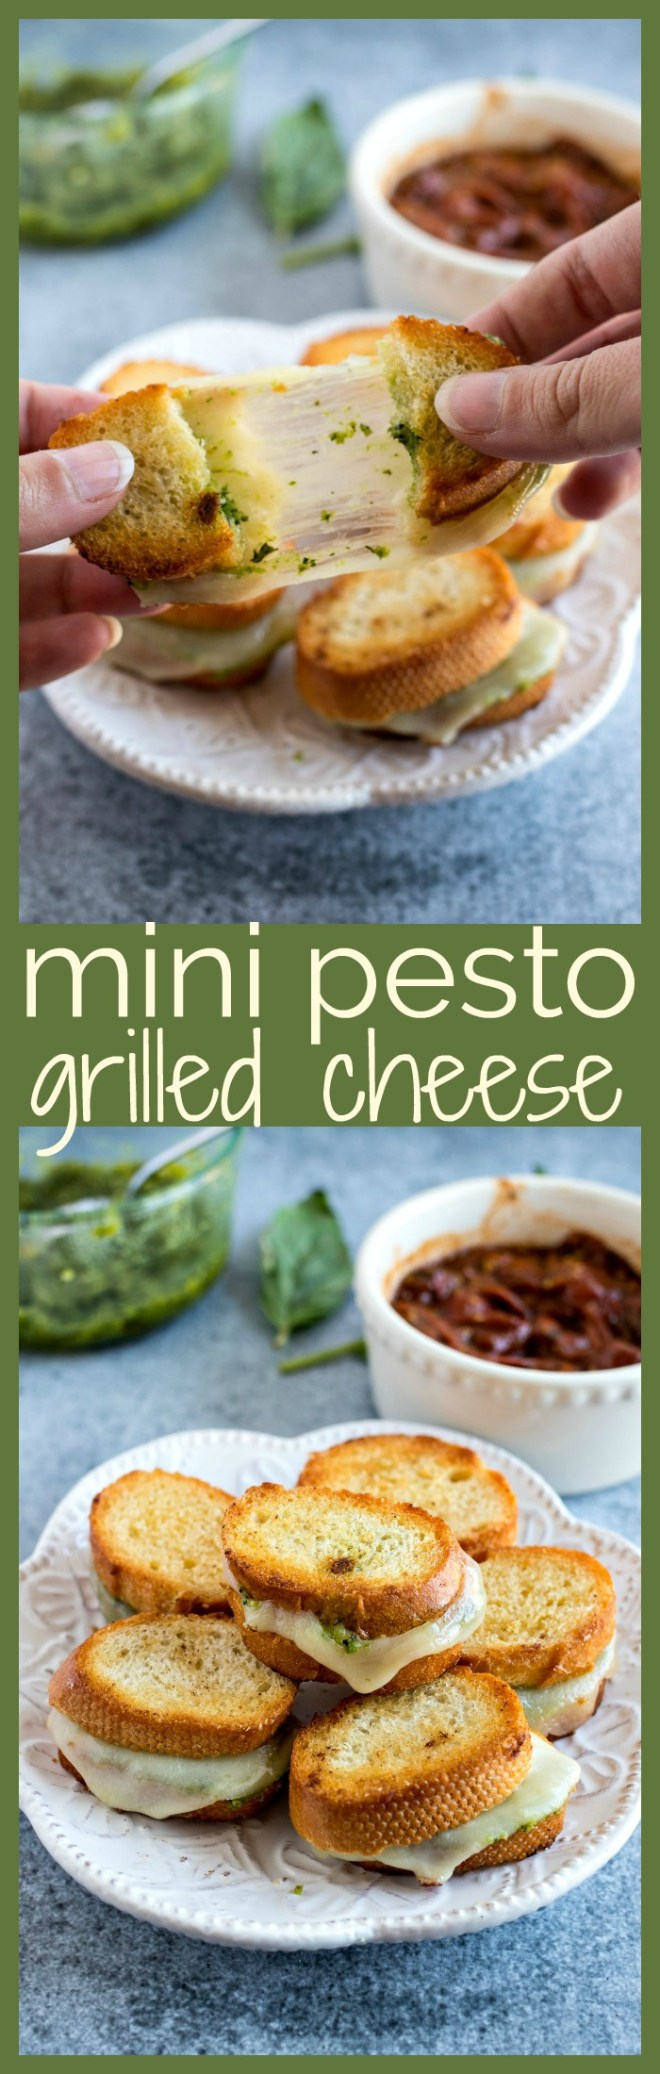 Mini Pesto Grilled Cheese - Fresh basil pesto and sliced provolone cheese is sandwiched into a crusty baguette and grilled to perfection the make the best appetizer for any event. Don't forget to serve with homemade garlic butter tomato sauce for dunking!